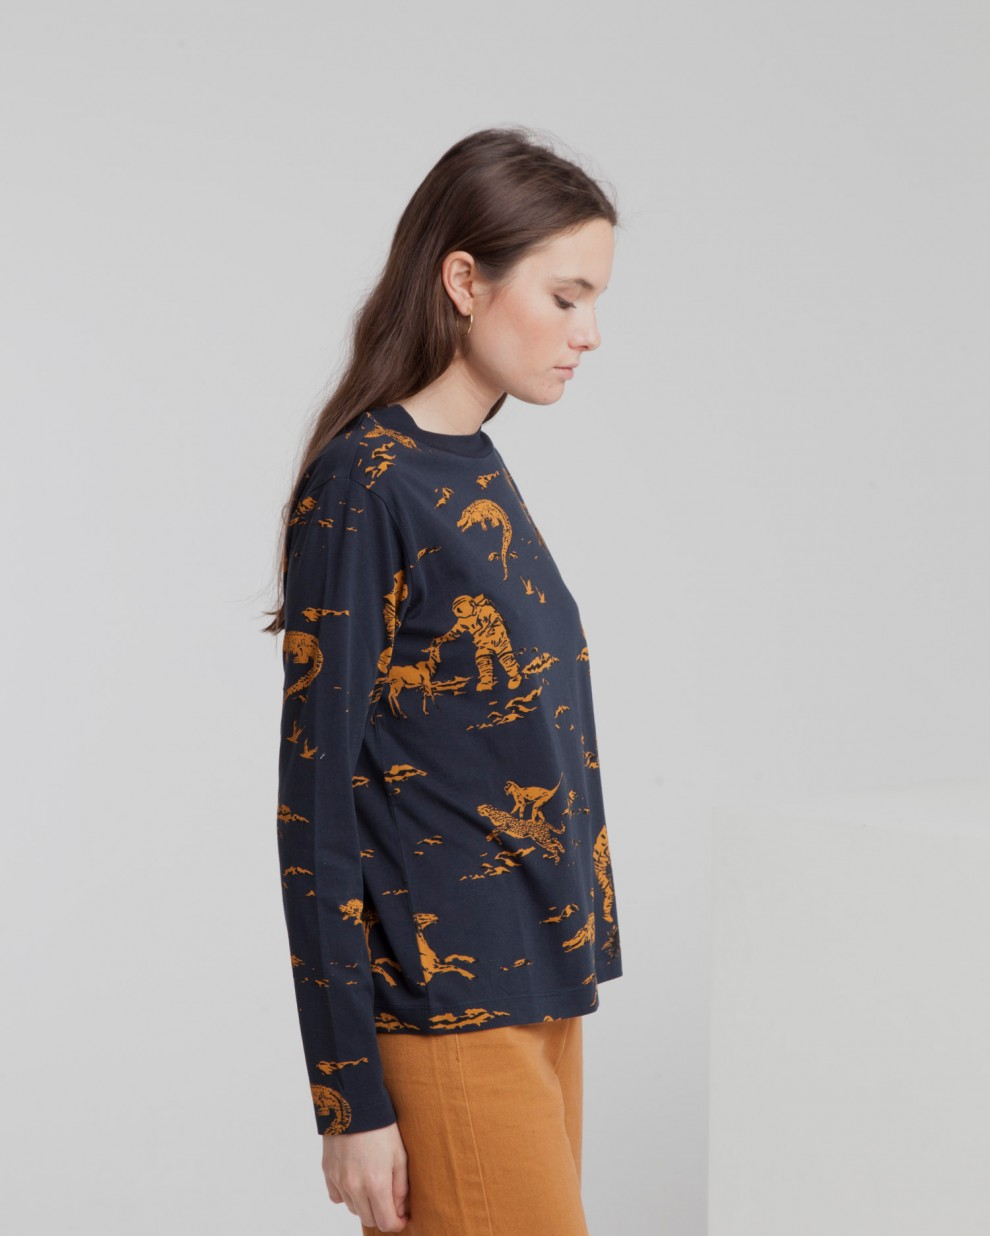 Space Rider L/S T-Shirt